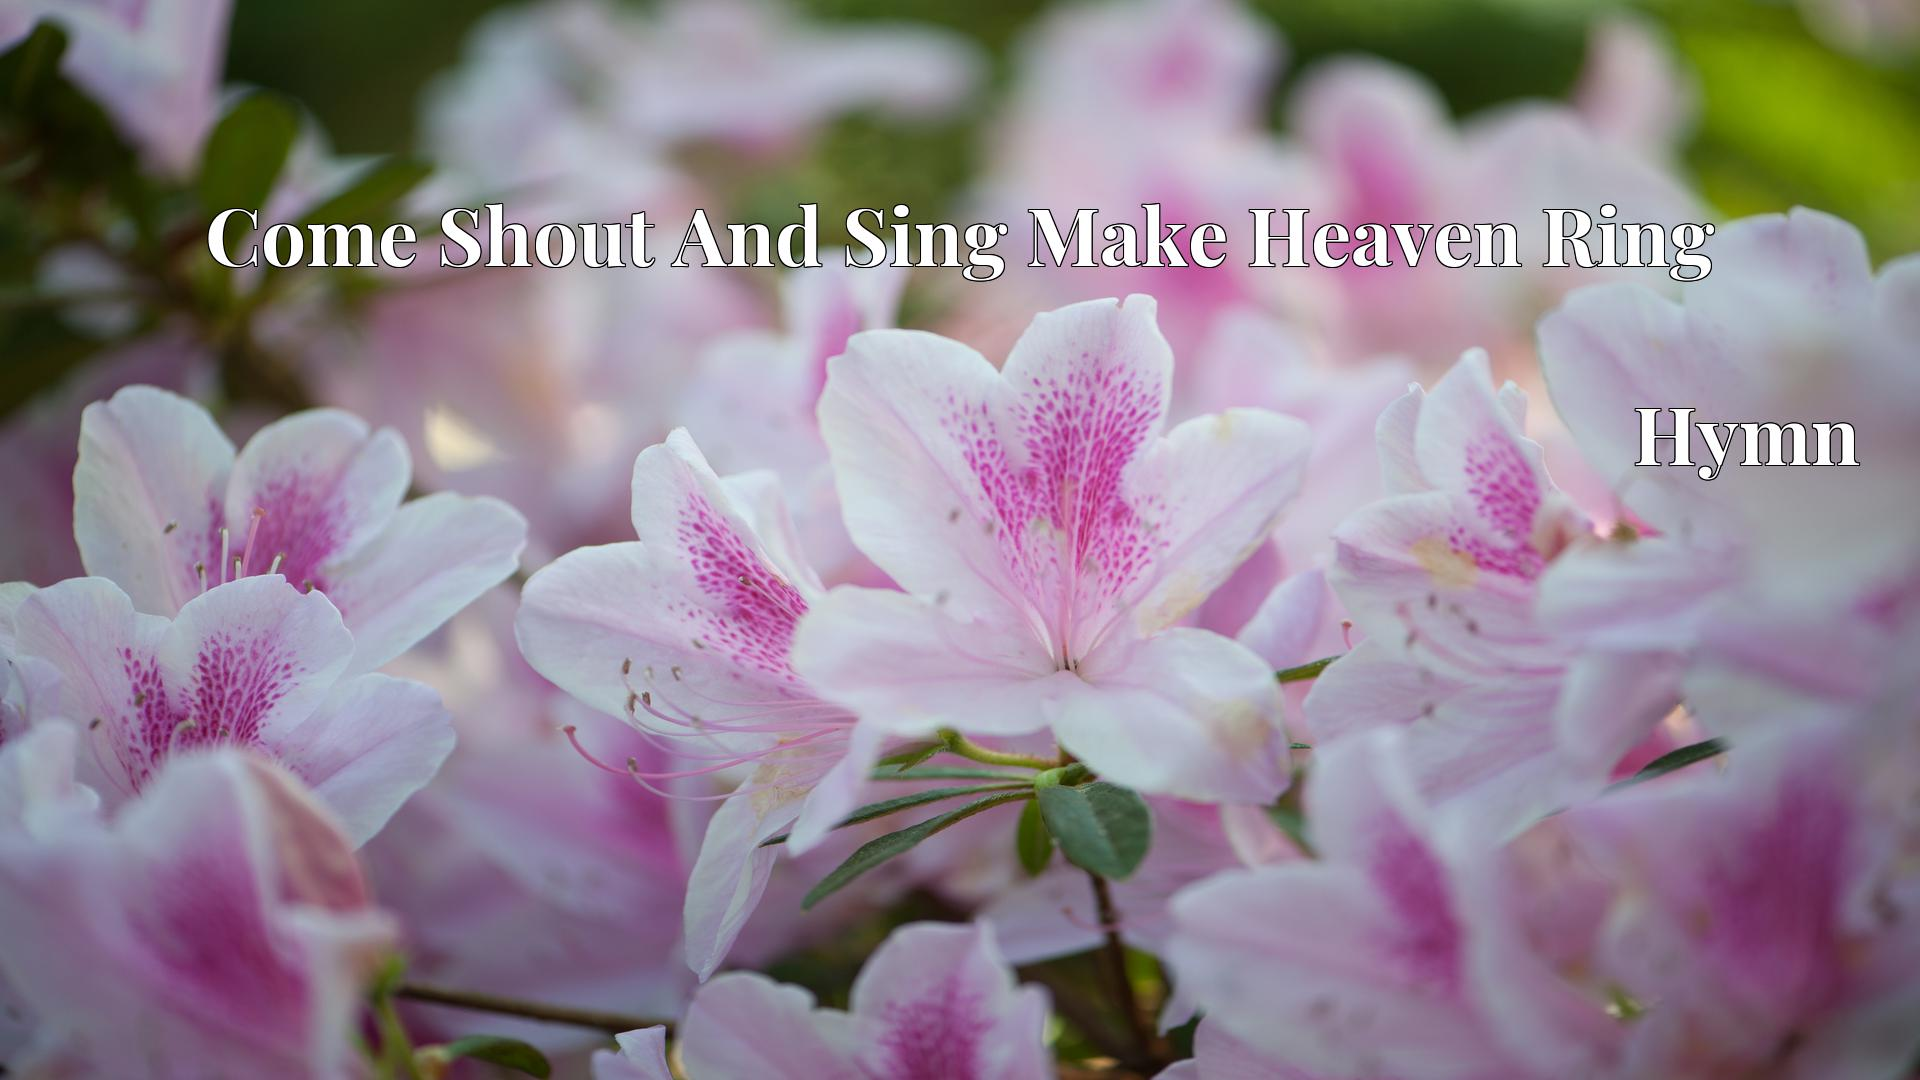 Come Shout And Sing Make Heaven Ring - Hymn